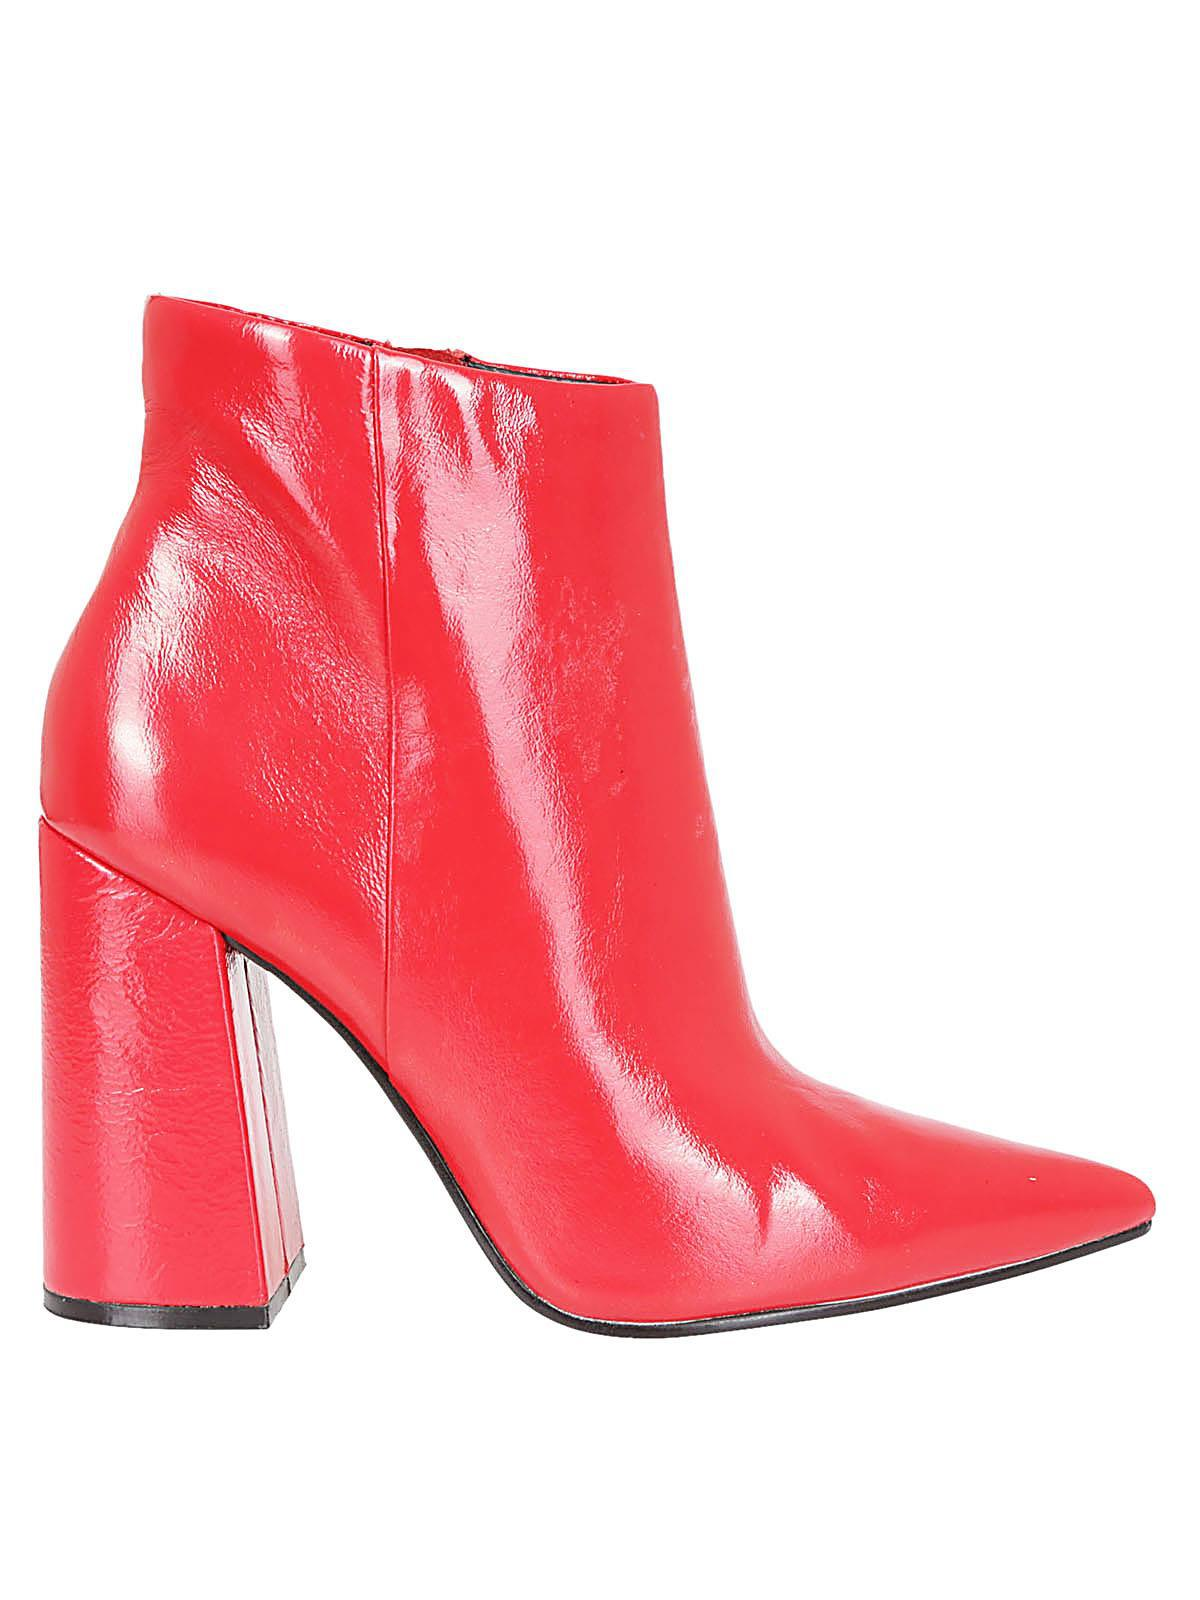 d8fb9ad3d Steve Madden Boots For Women in Red - Save 22% - Lyst